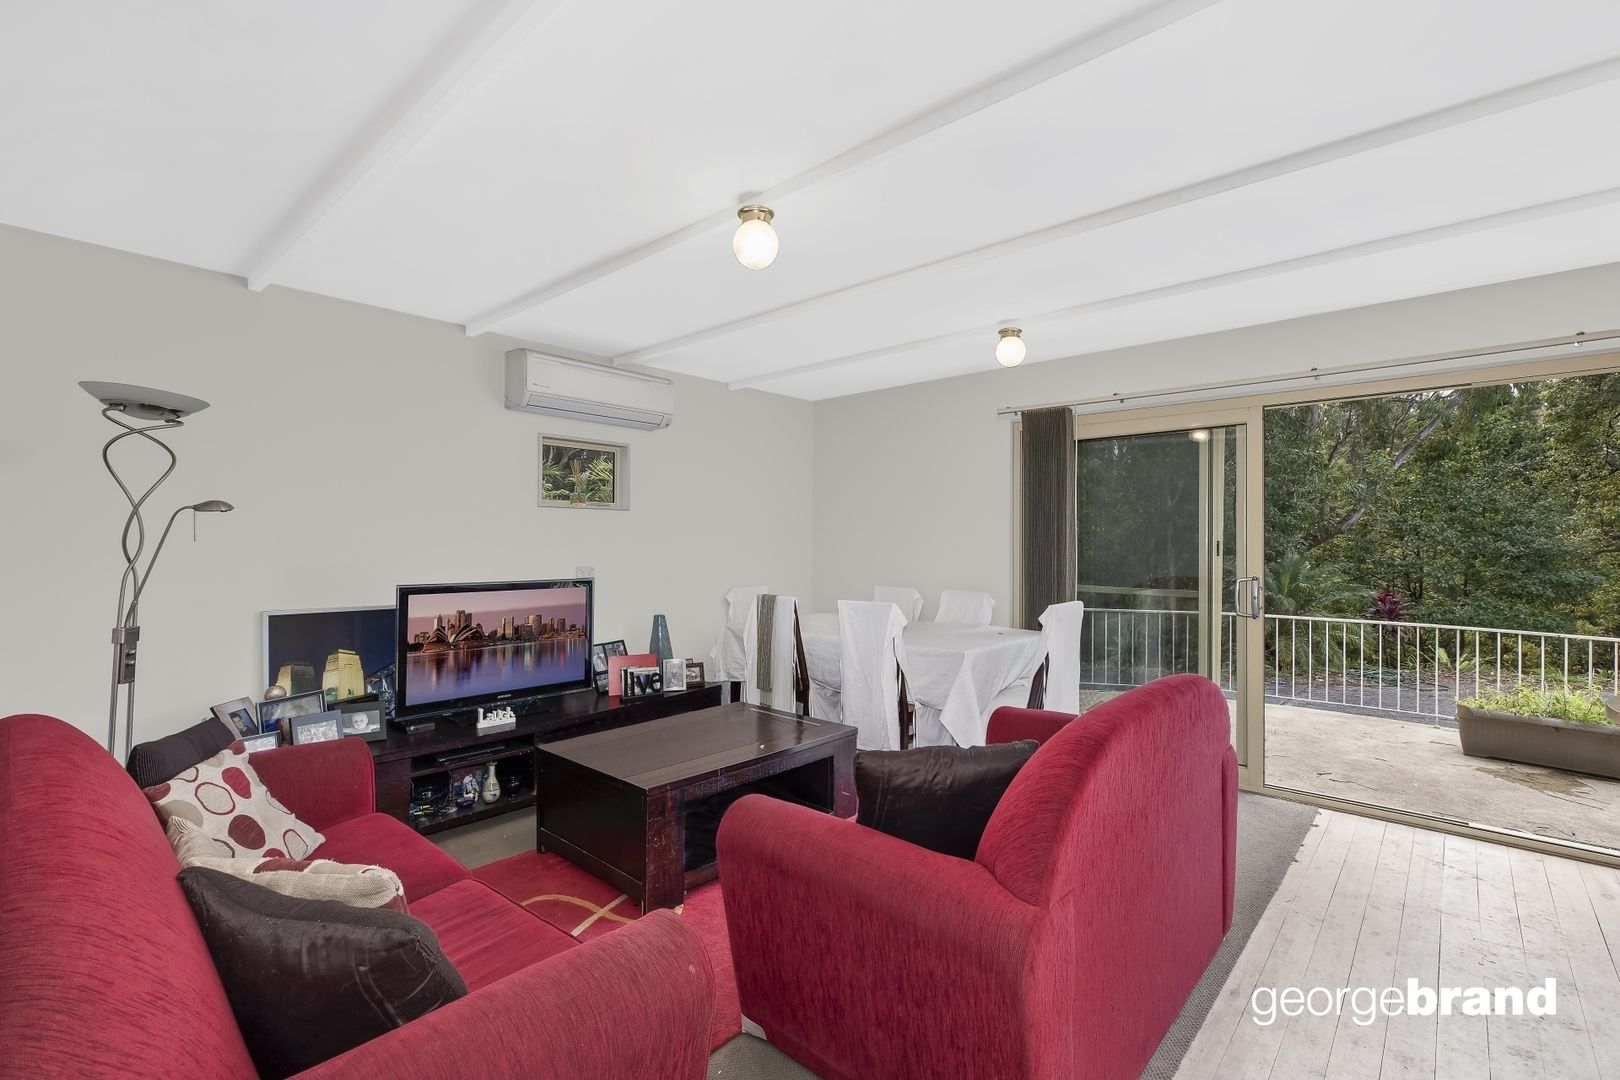 Erina Real Estate: 2x2 BEDROOM HOMES, DUAL LIVING or HIGH RETURN INVESTMENT